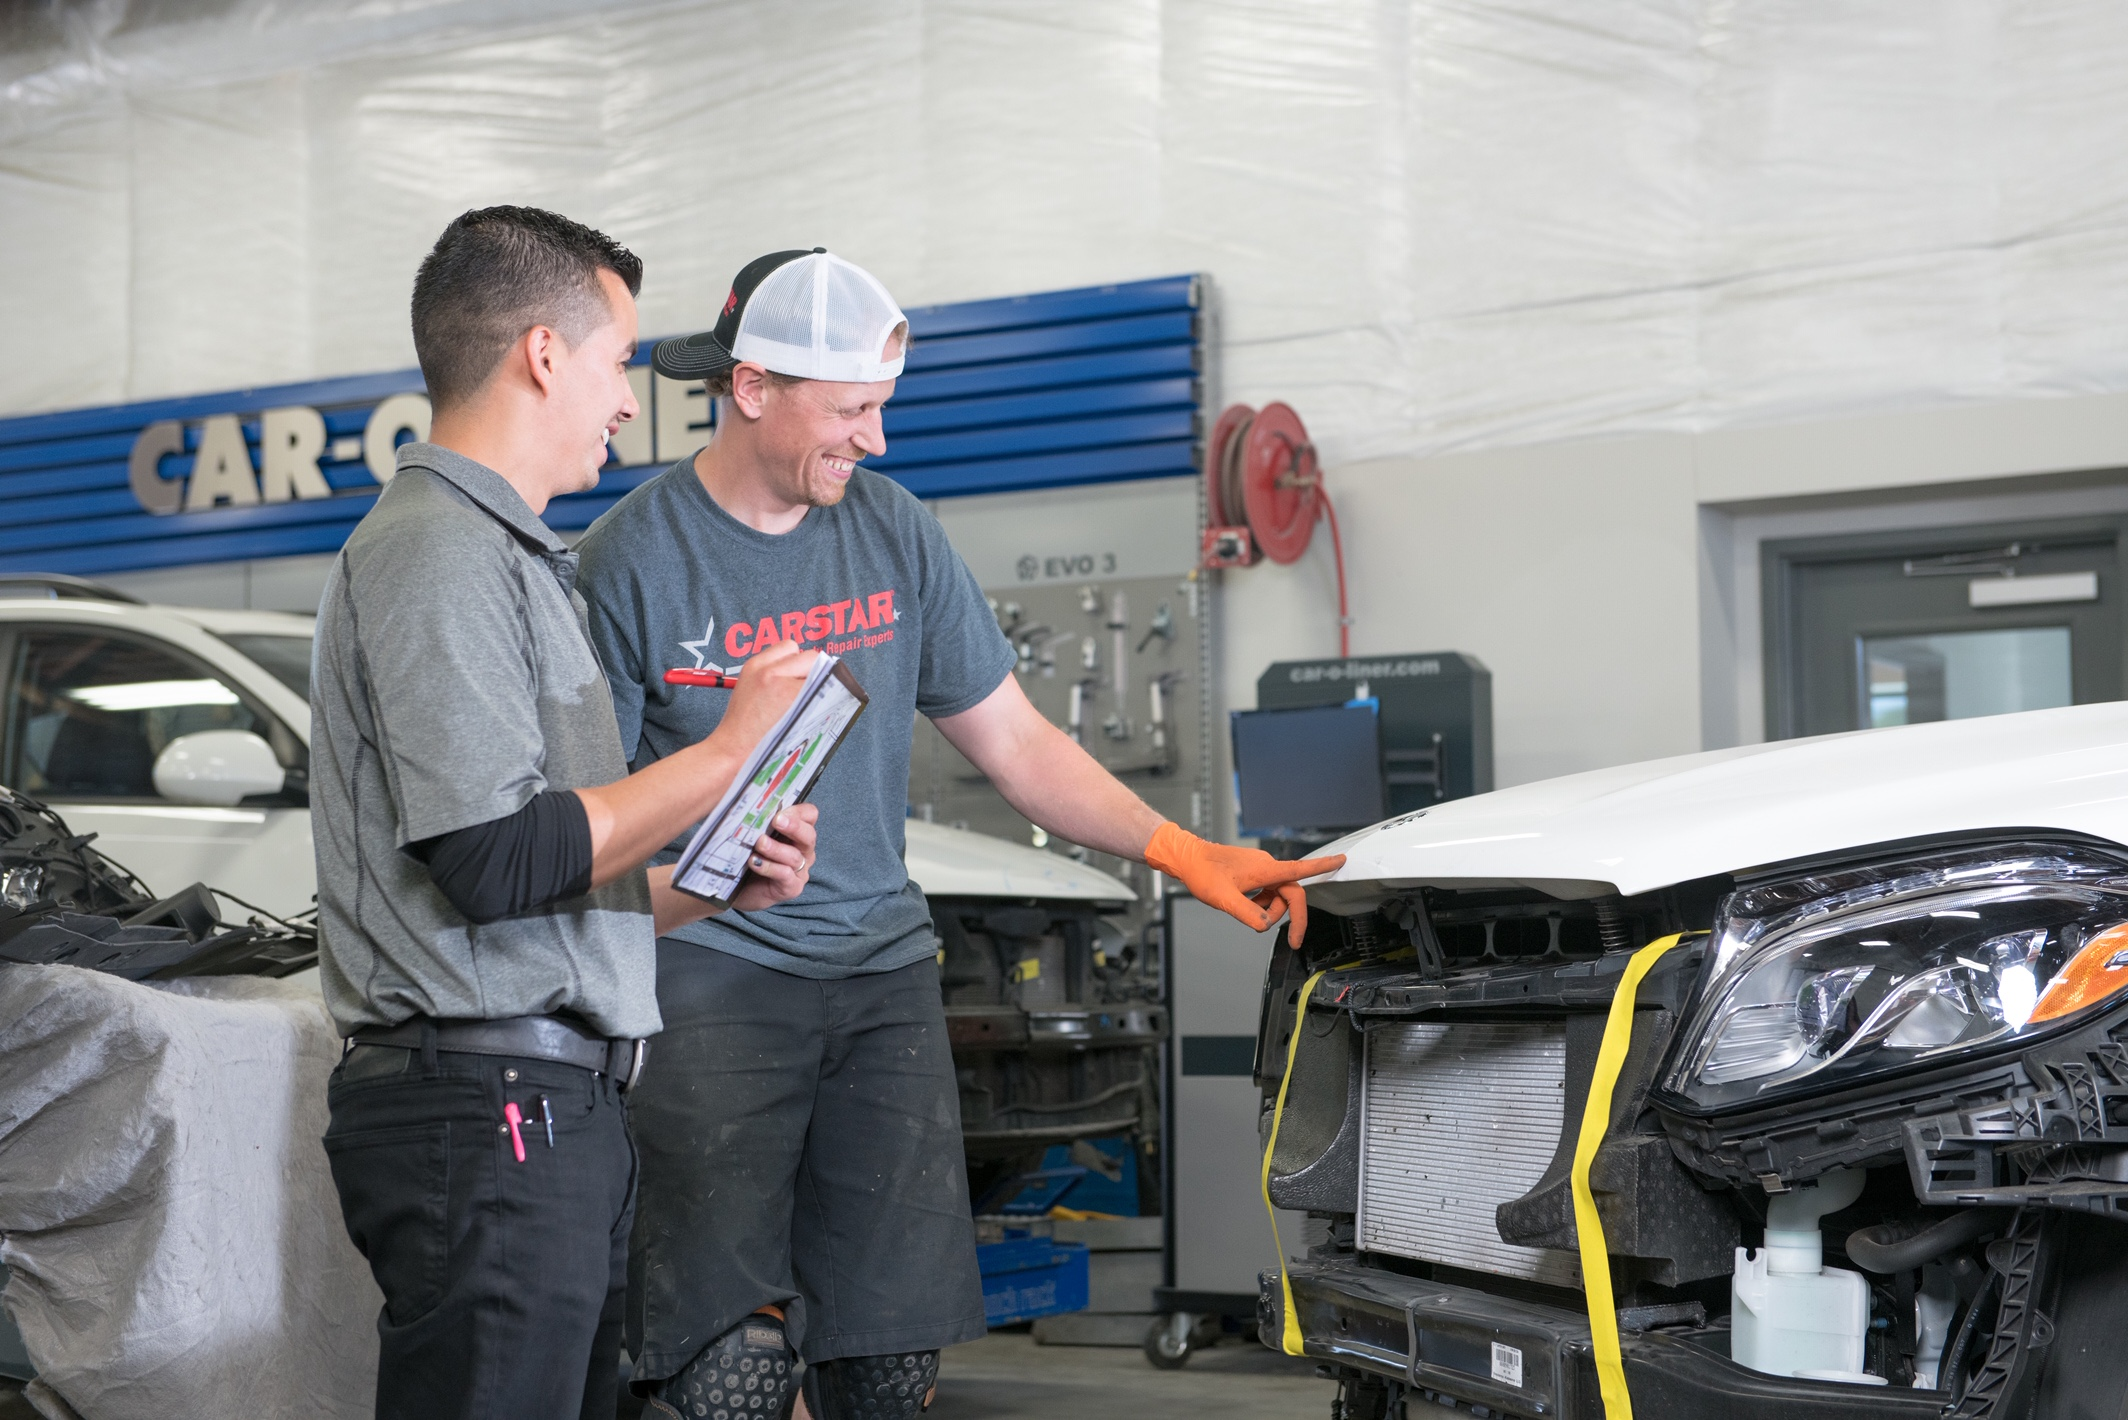 Carstar | Cesar Juarez- Shop Manager and Brit Balant- Autobody Technician